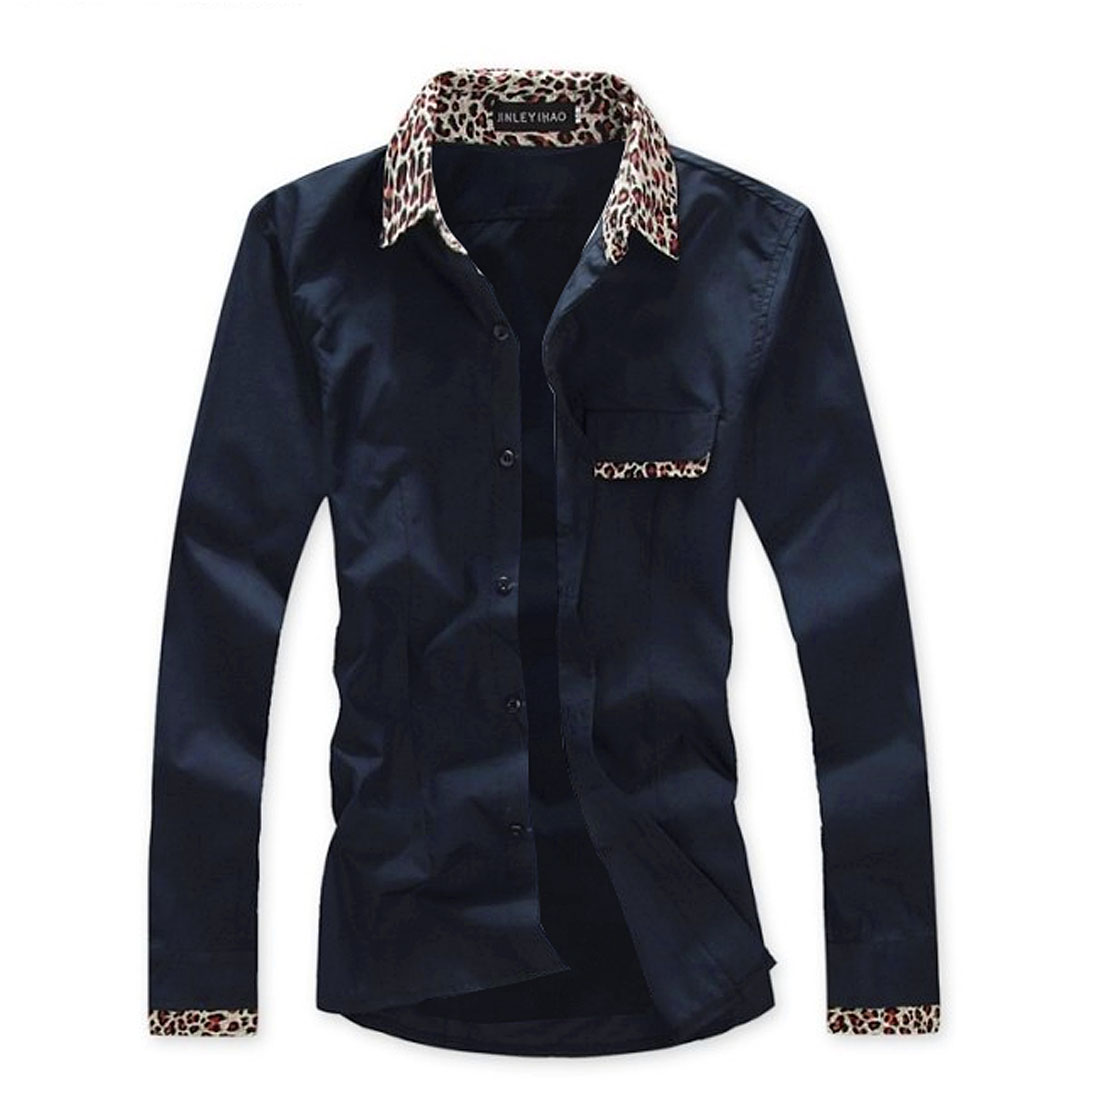 Men New Point Collar Buttoned Leopard Pattern Detail Top Navy Blue S